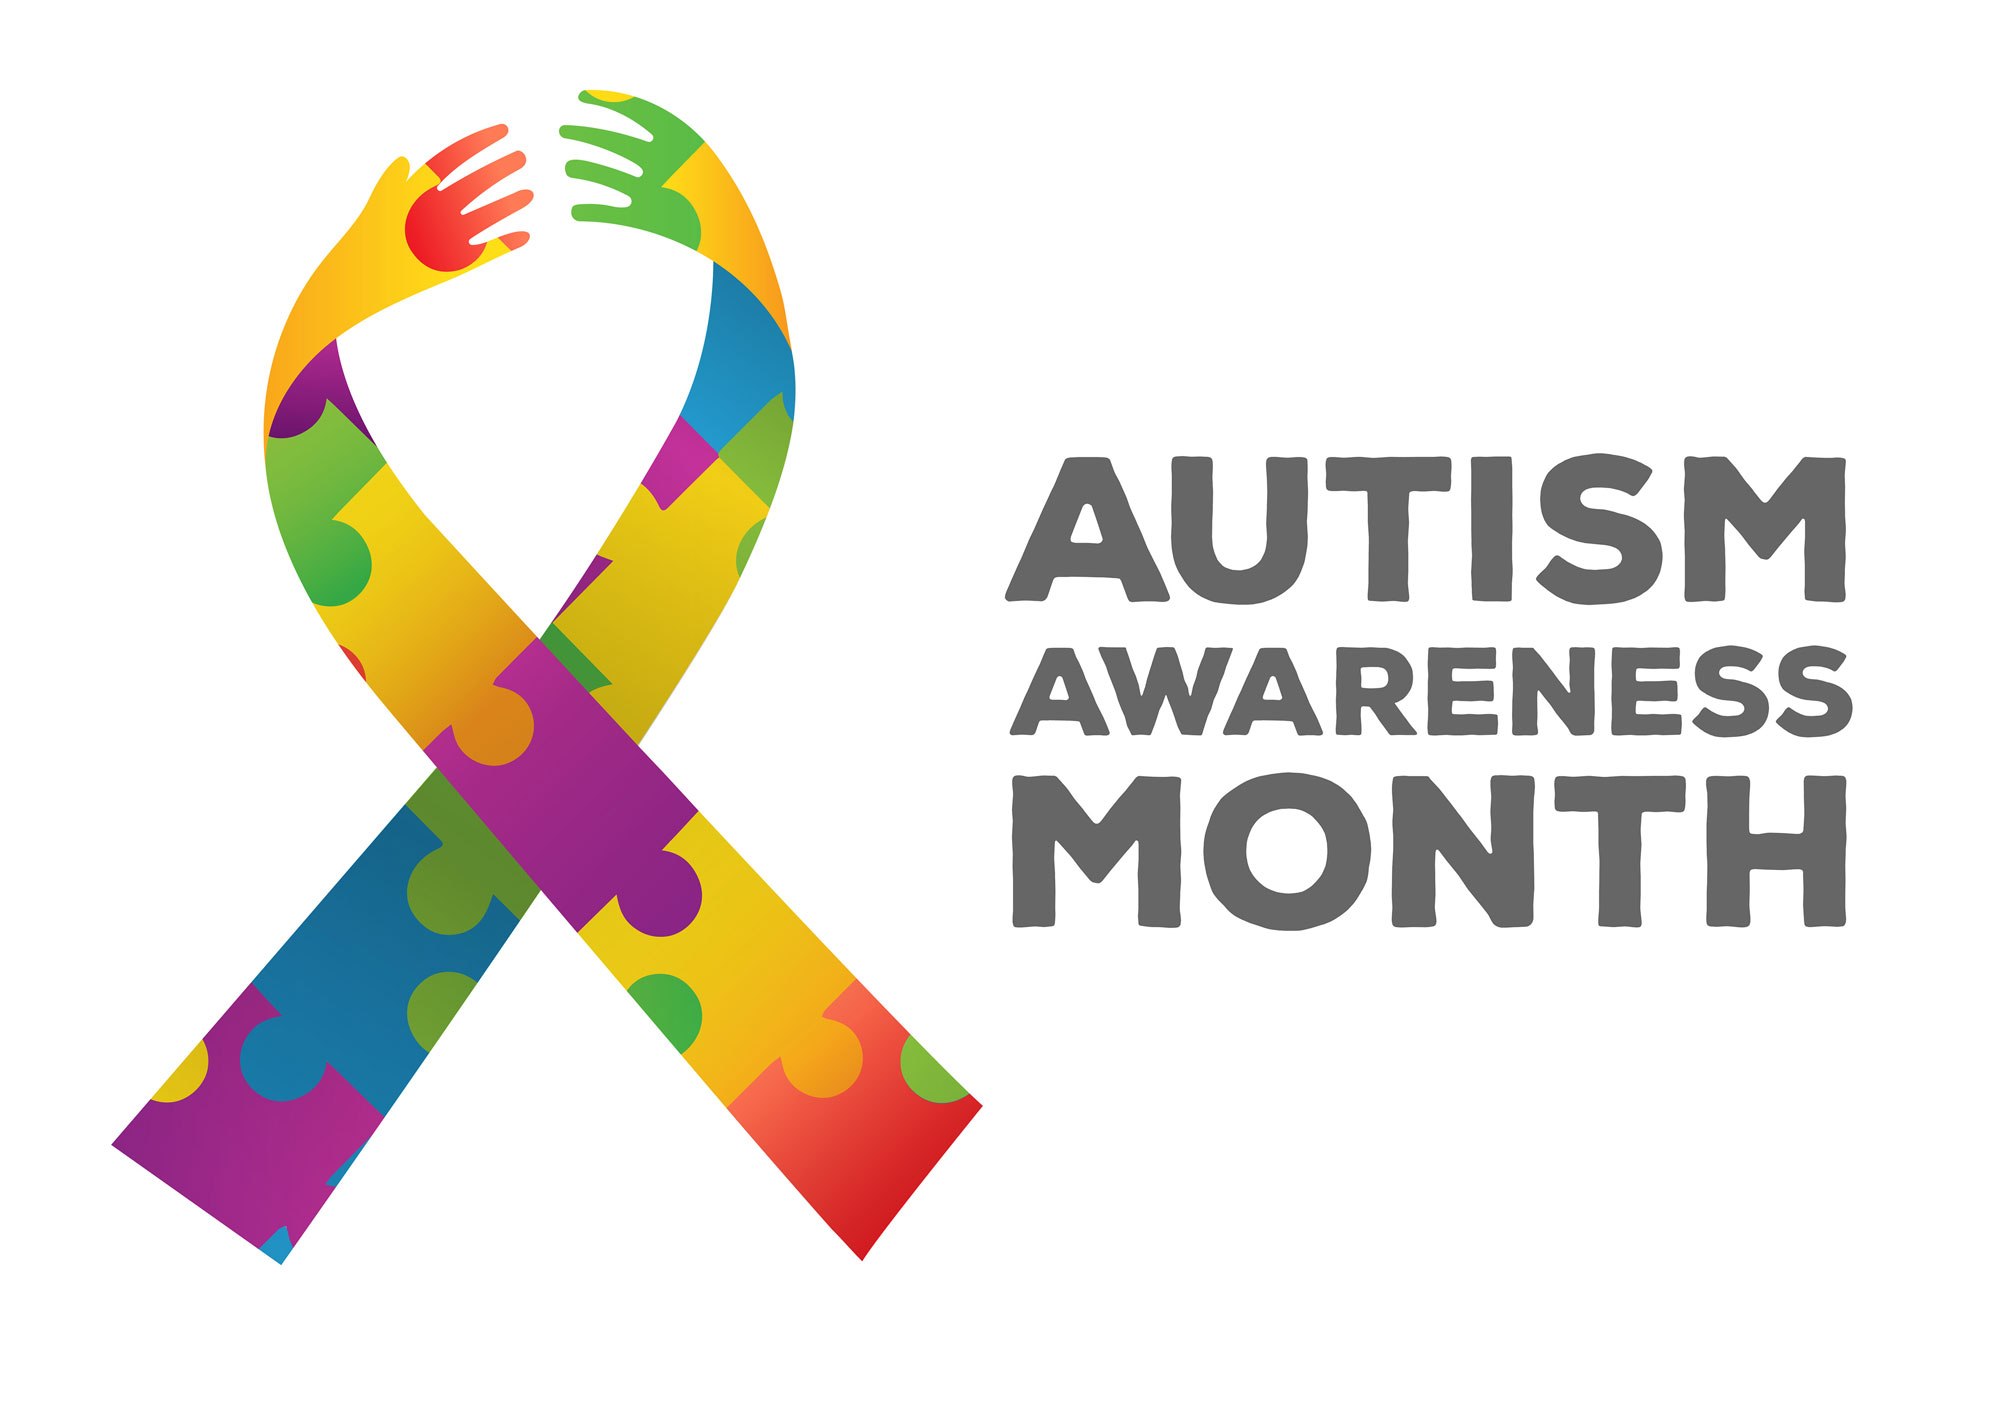 Autism Awareness Month: The History and Meaning of the Autism Puzzle Piece